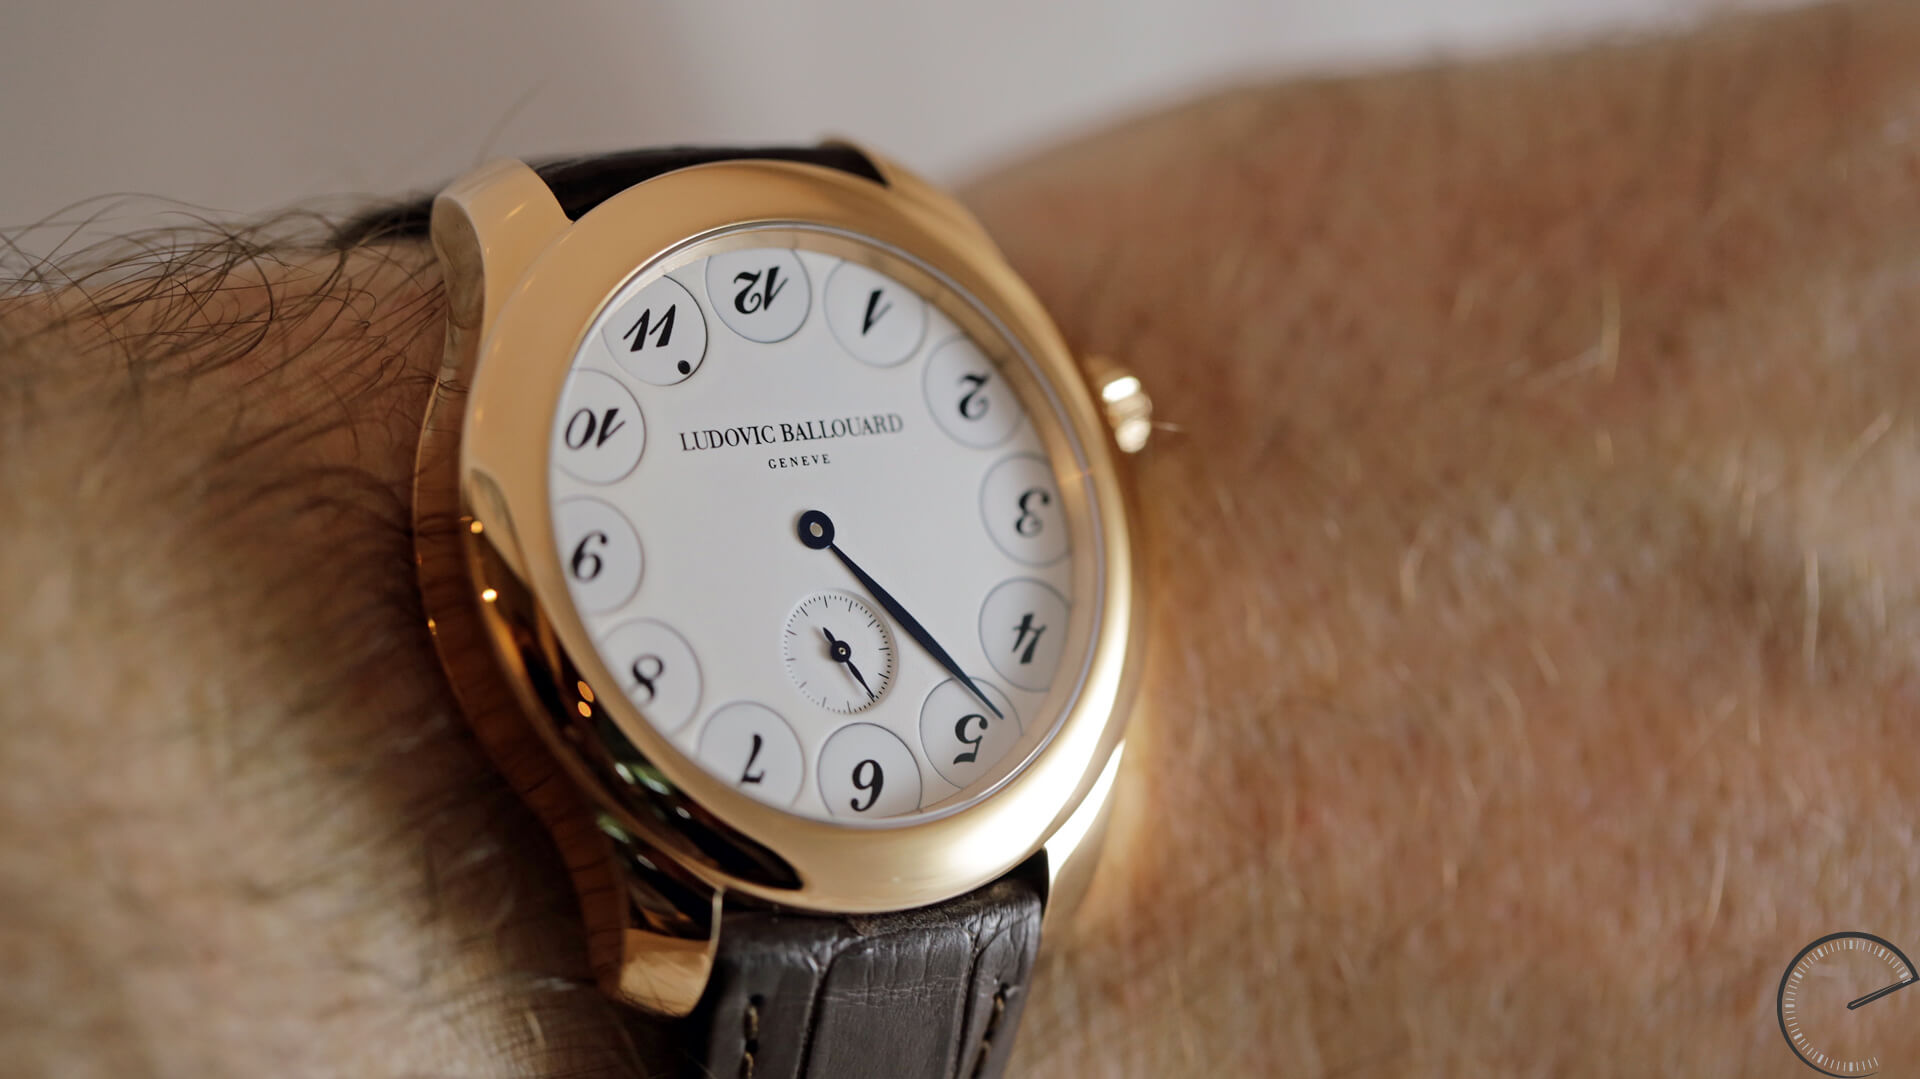 Ludovic Ballouard Upside Down Blanche in 18-carat red gold - watch review by Angus Davies, ESCAPEMENT blog